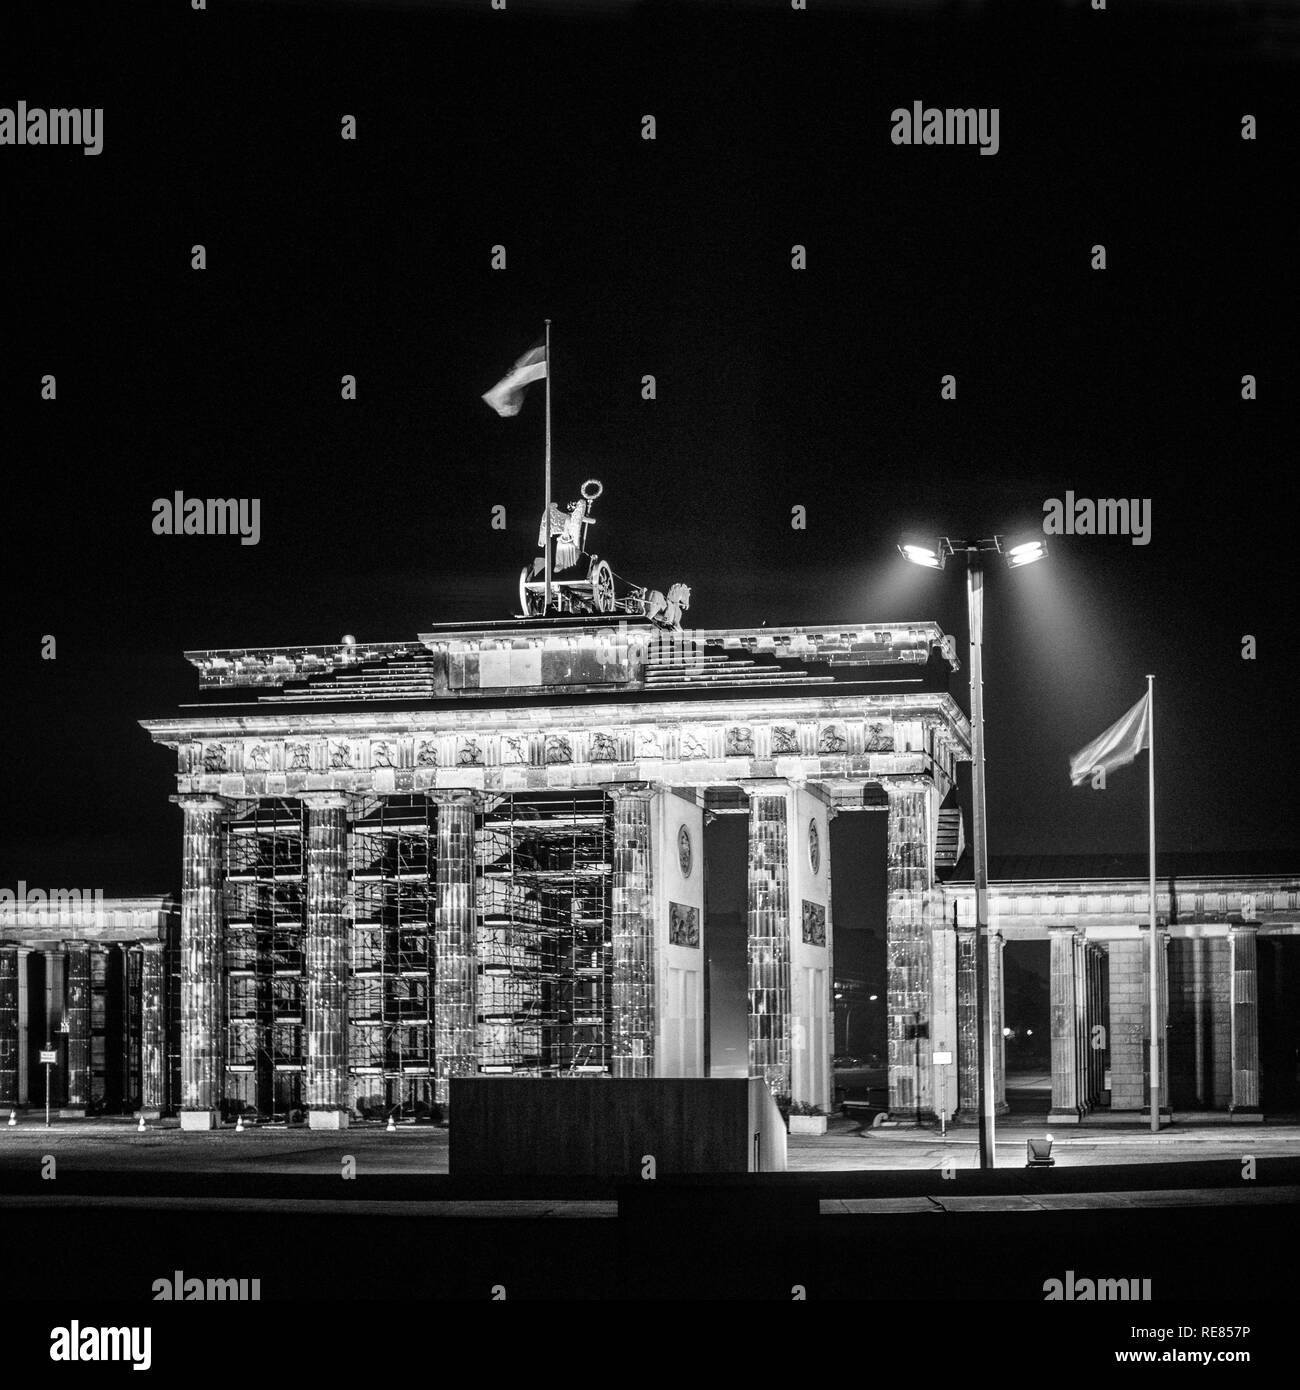 August 1986, illuminated Brandenburg Gate at night in East Berlin, view from West Berlin side, Germany, Europe, - Stock Image